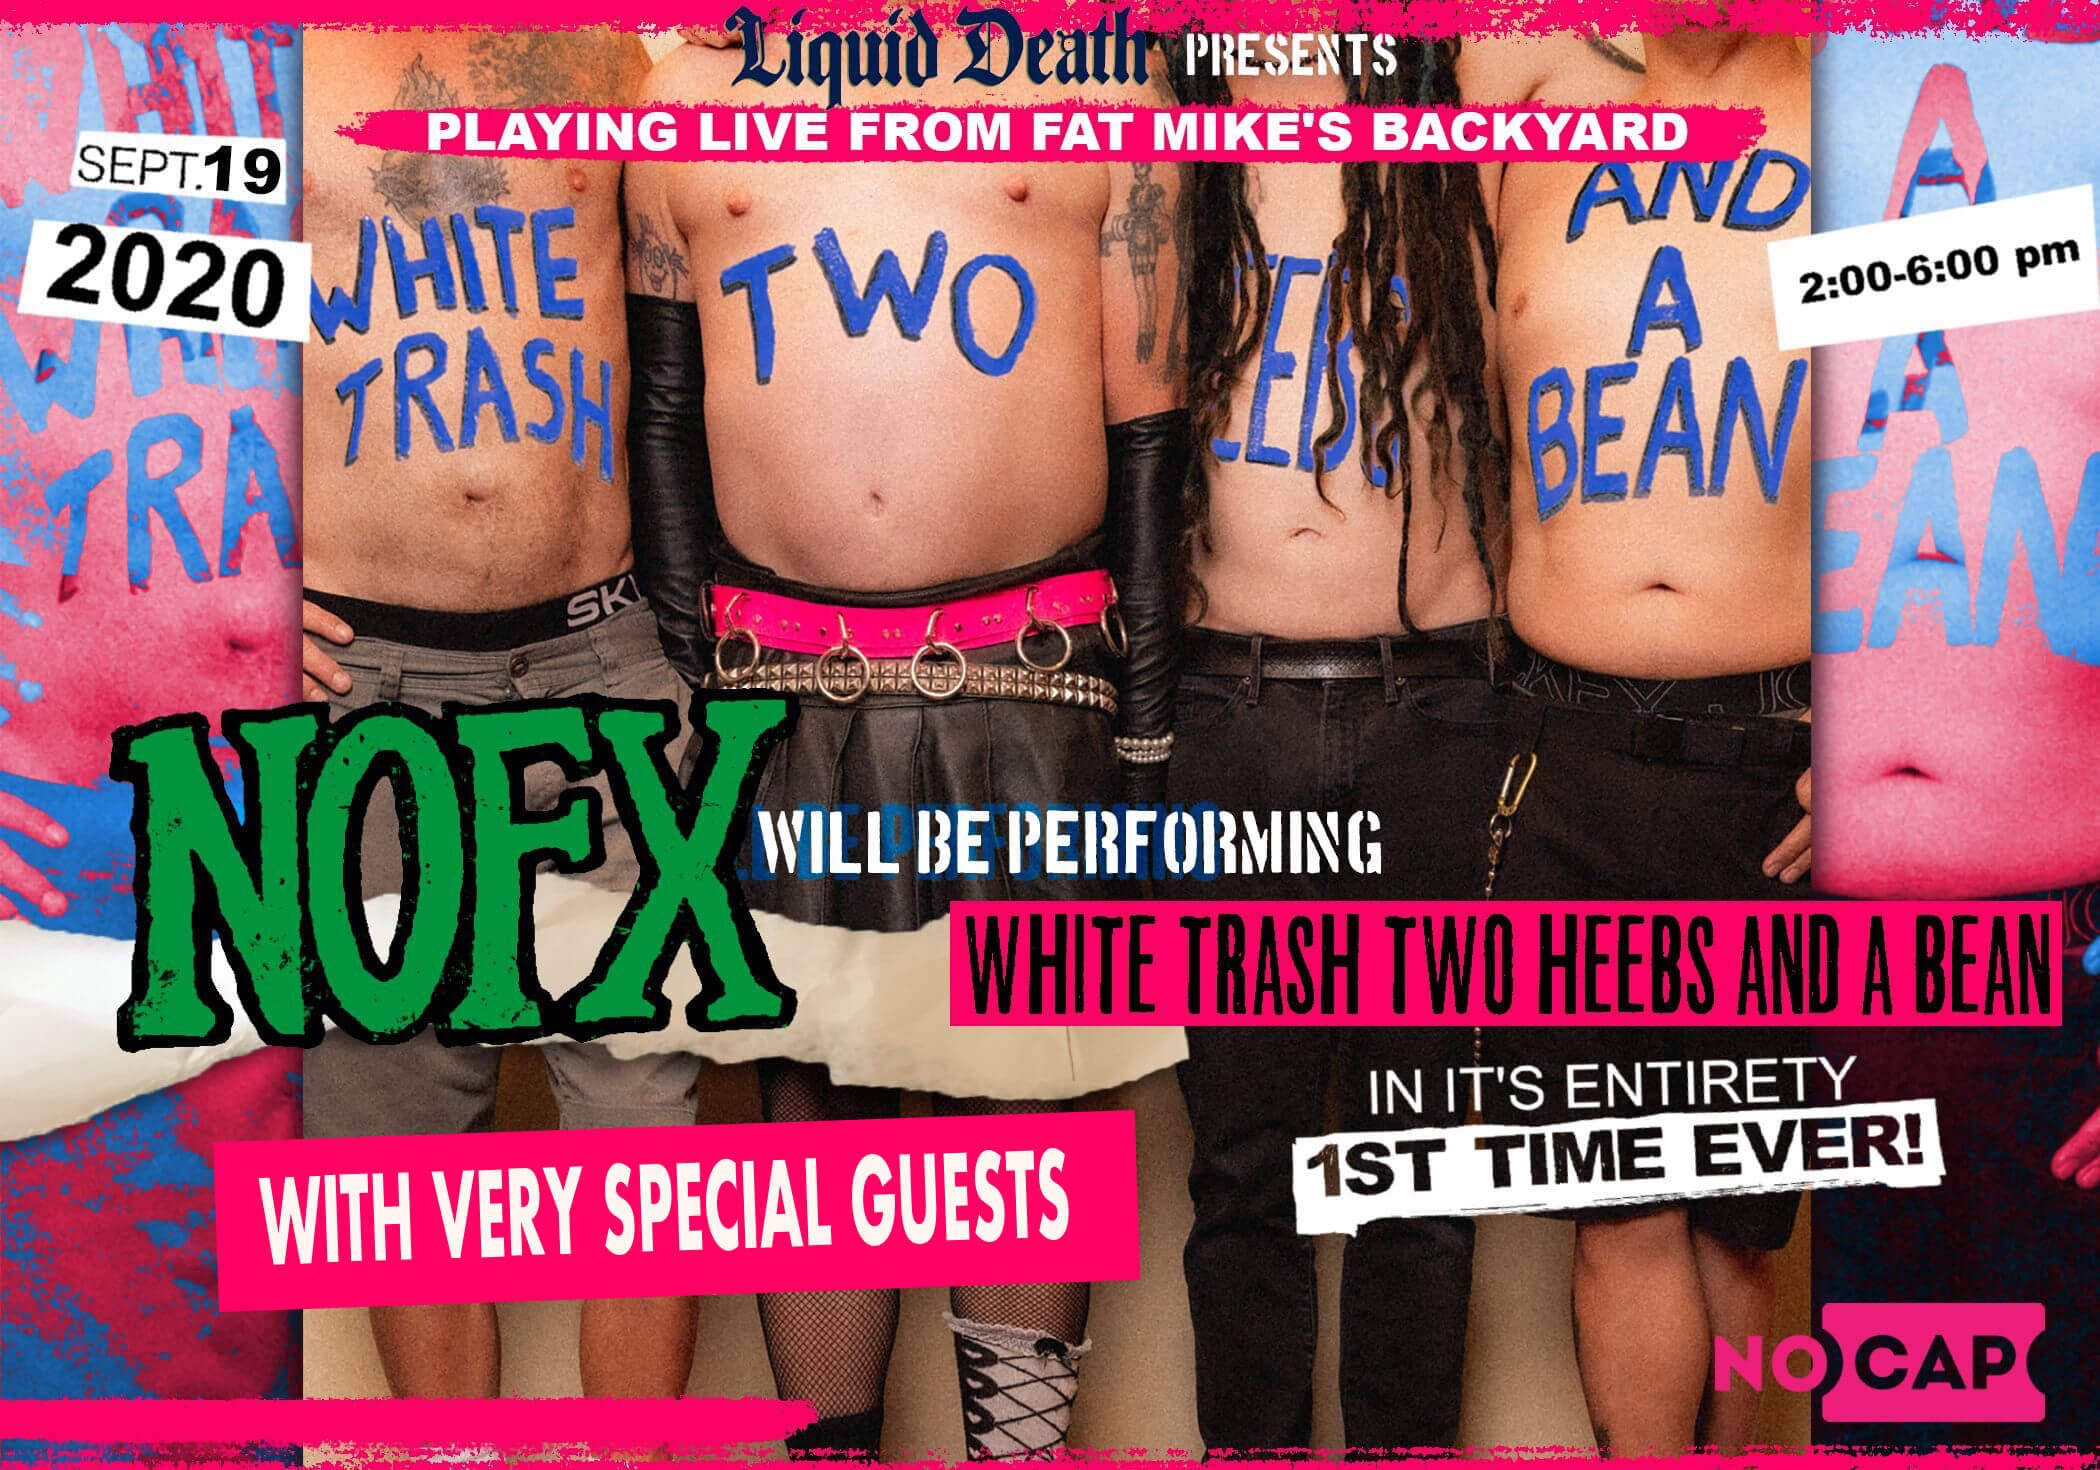 NOFX White trash two heebs and a bean LIVE